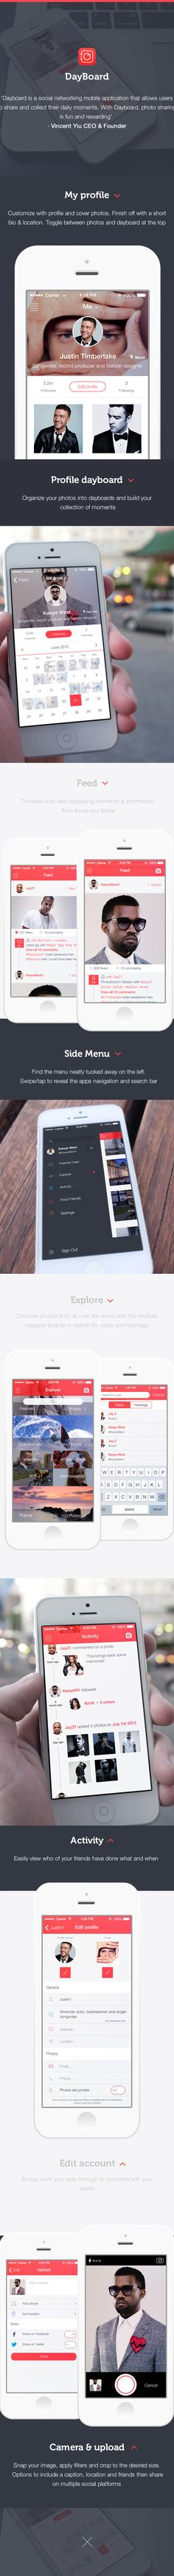 Dayboard - Social Platform by Ben Dunn, via Behance